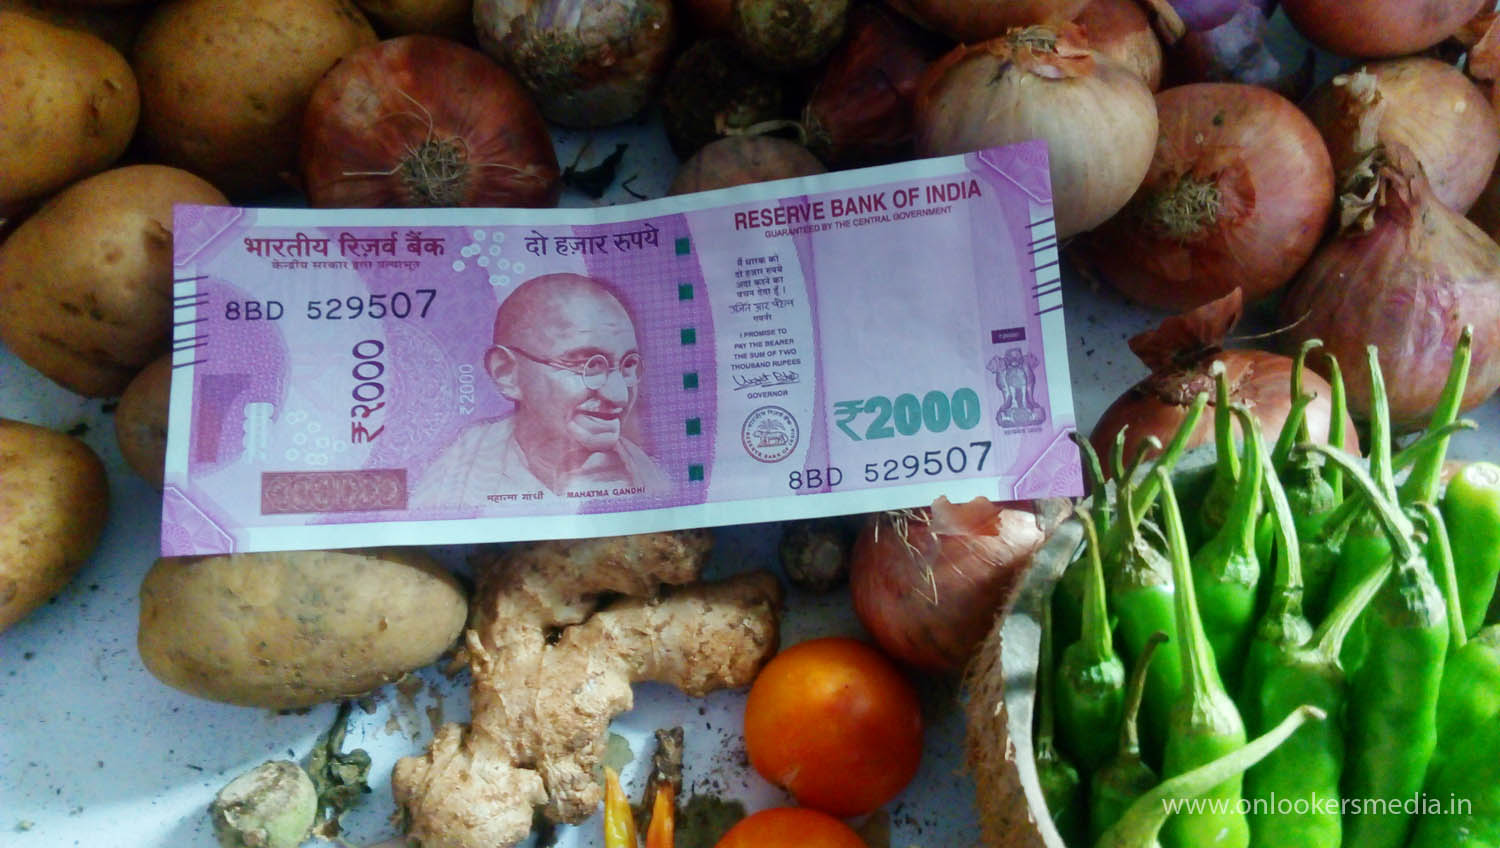 2000 rupees note, rs 2000, 2000 indian rupee, narendra modi, new 500 note, 2000 rupee note problem, 2000 rupees note features